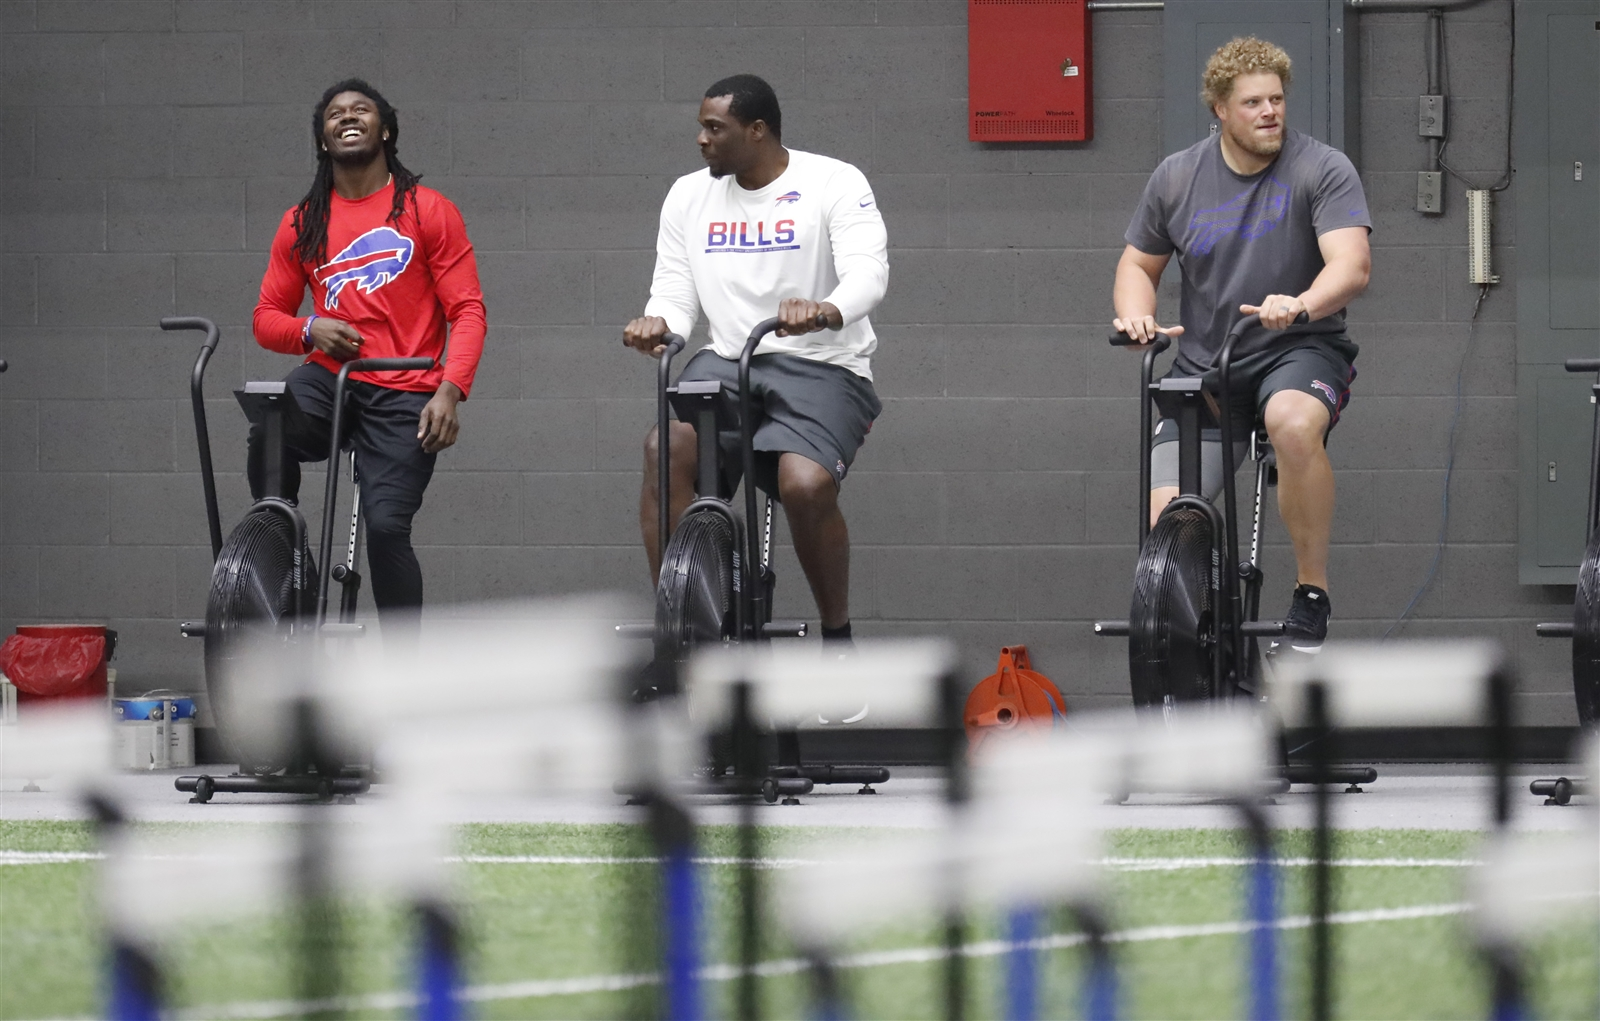 Sammy Watkins, Cyrus Kouandjio and Eric Wood – all recovering from injuries – took part as attendance was strong at the Bills' first day of voluntary offseason workouts. (Harry Scull Jr./Buffalo News)